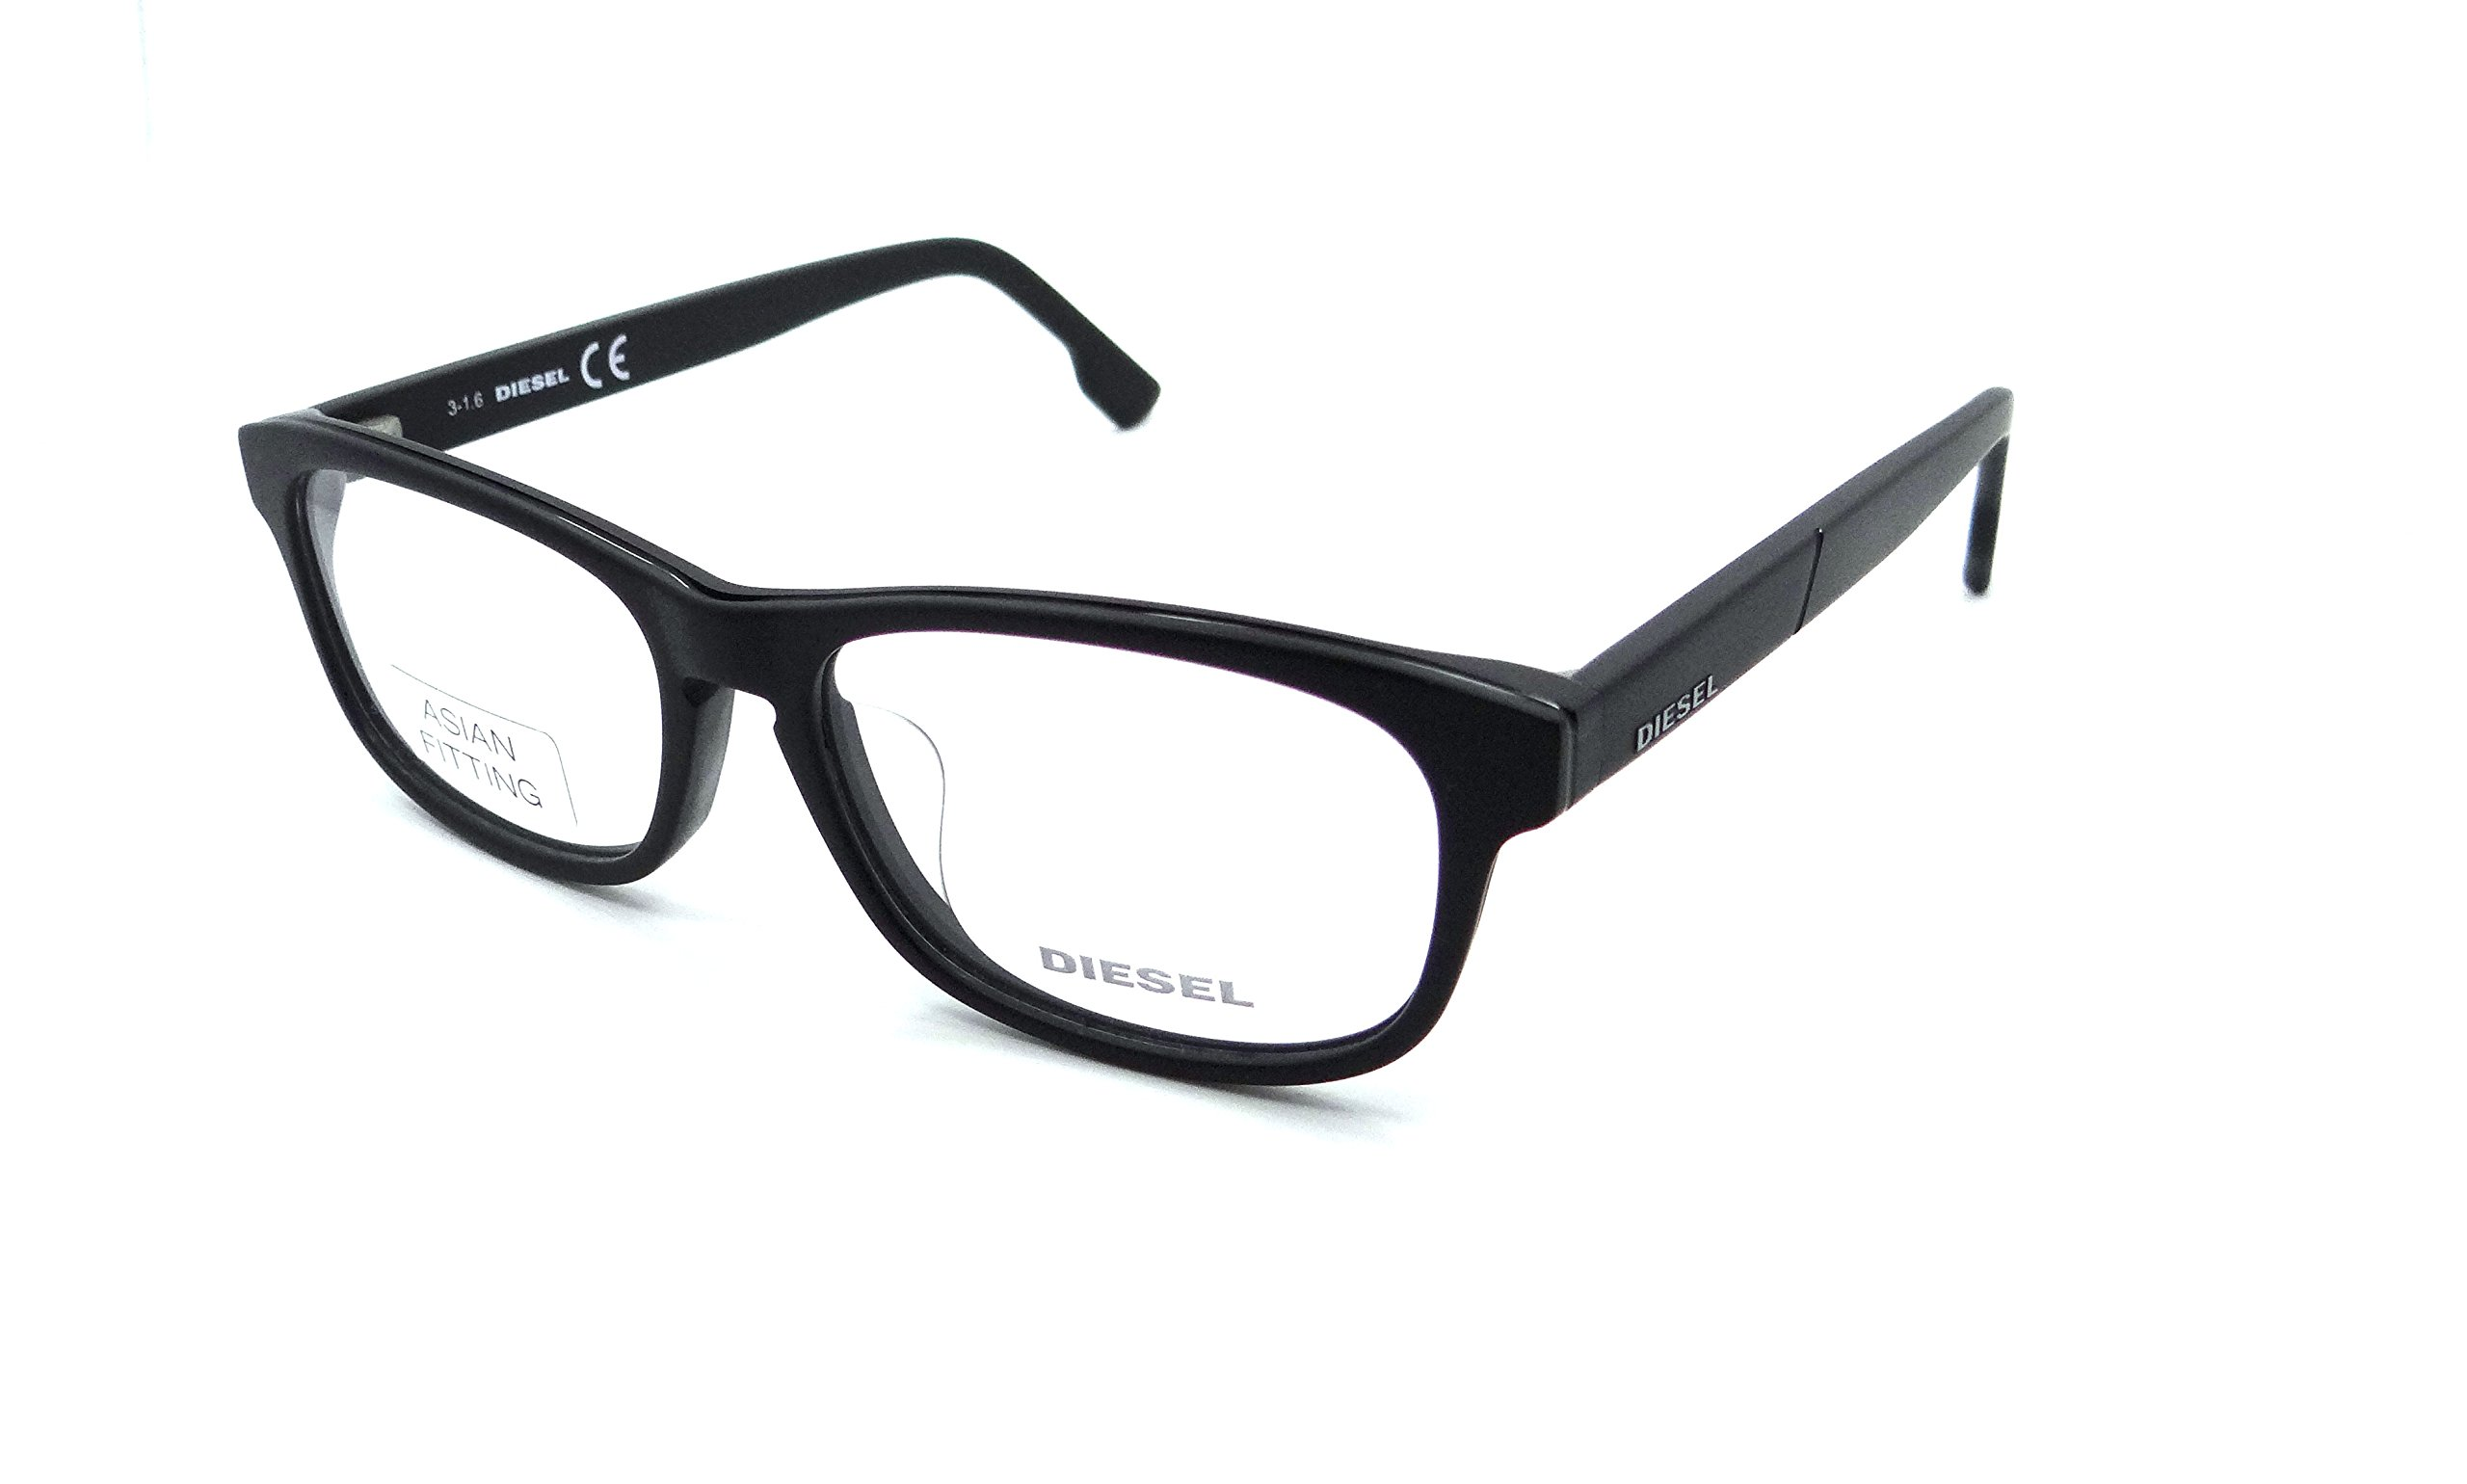 Diesel Rx Eyeglasses Frames DL5197-F 002 53-15-145 Matte Black Asian Fit